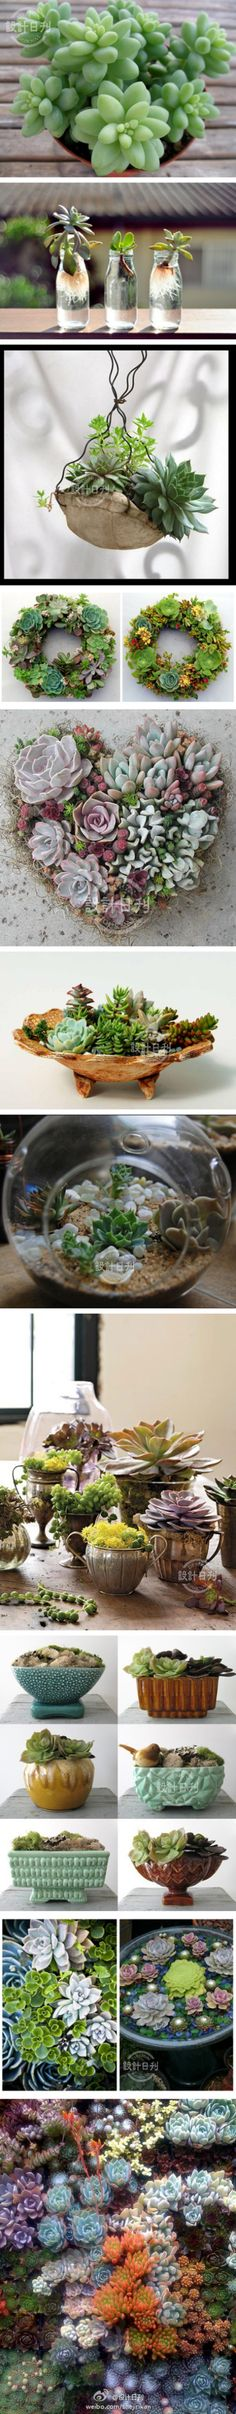 i love how these look!! might have to do a little succulent project next.. ~Succulents! by weibo.com/shejirikan  #Succulents